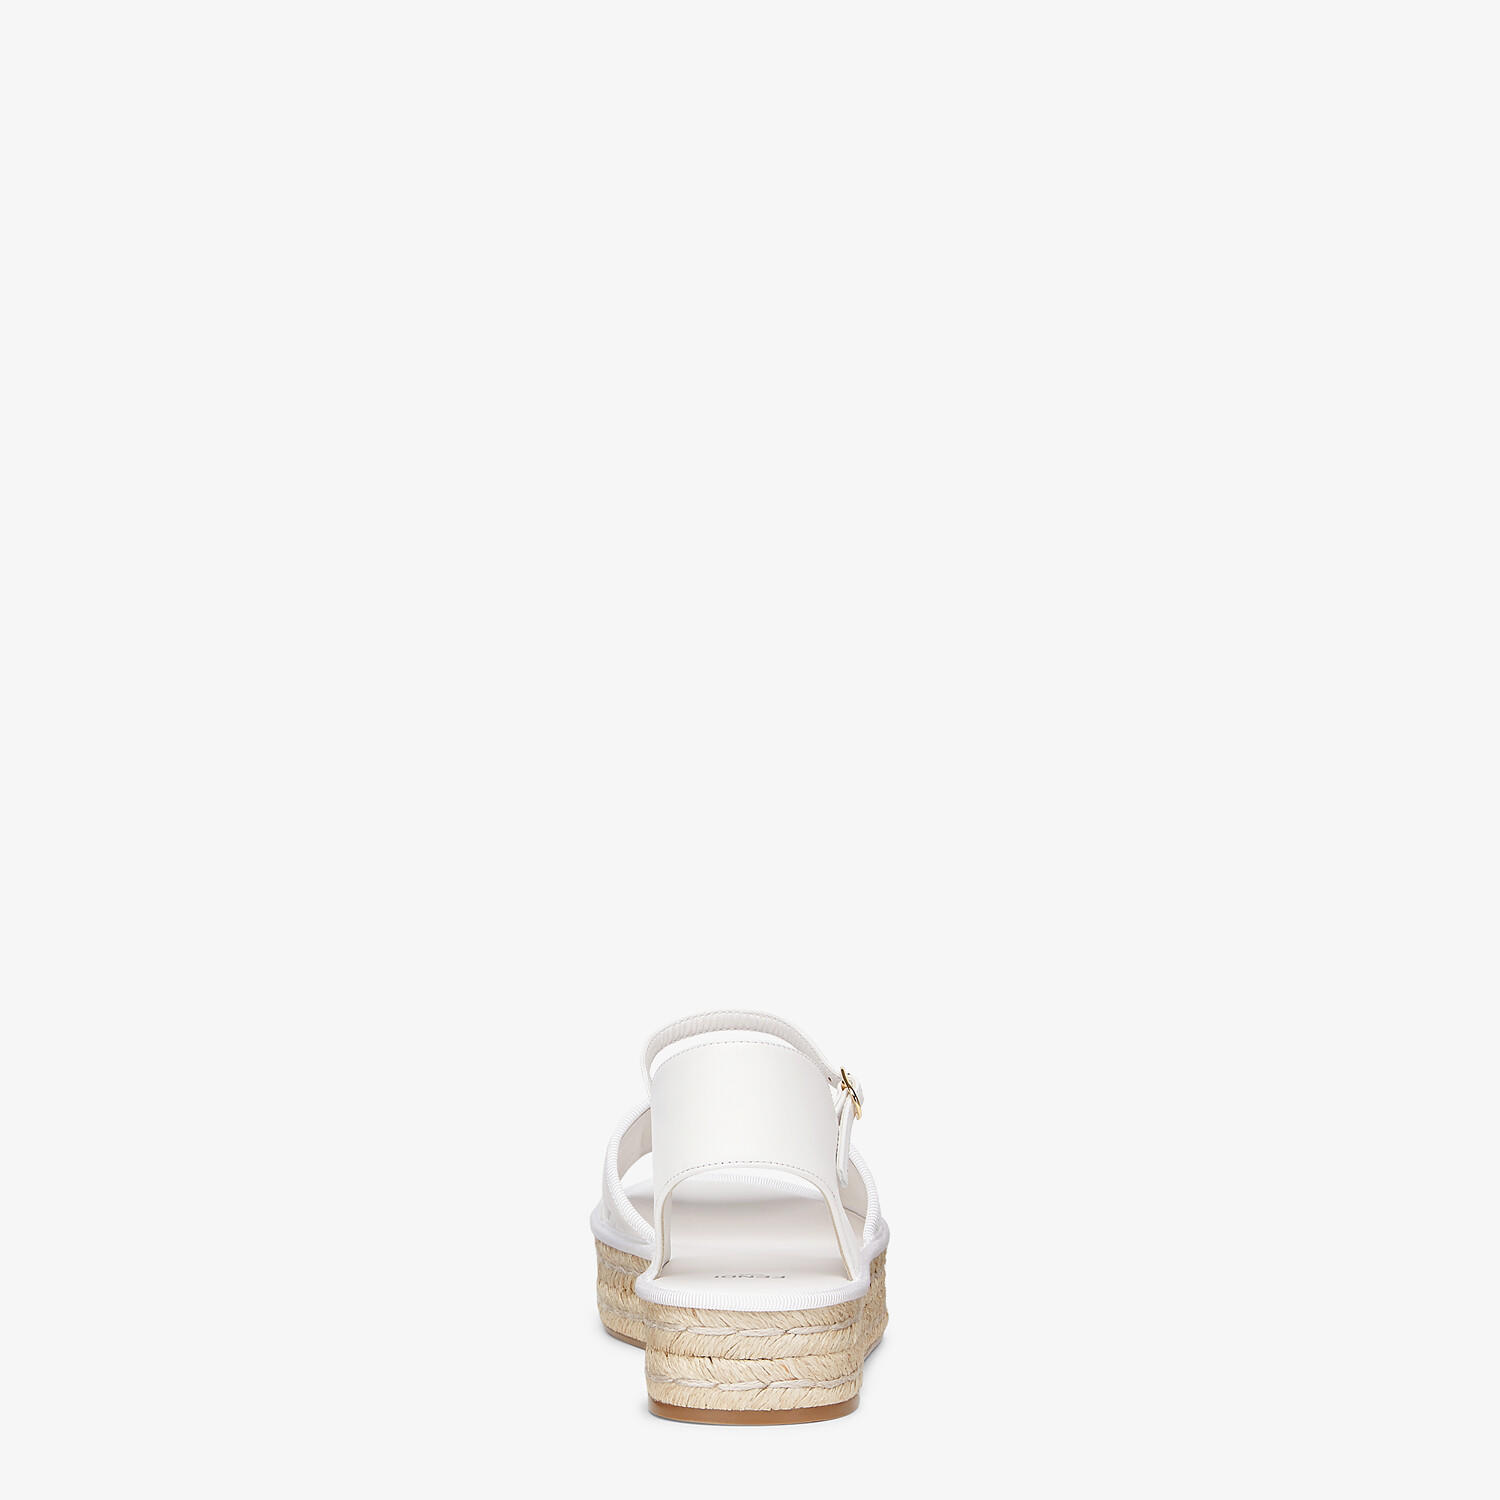 FENDI ESPADRILLES - White leather flatform espadrilles - view 3 detail